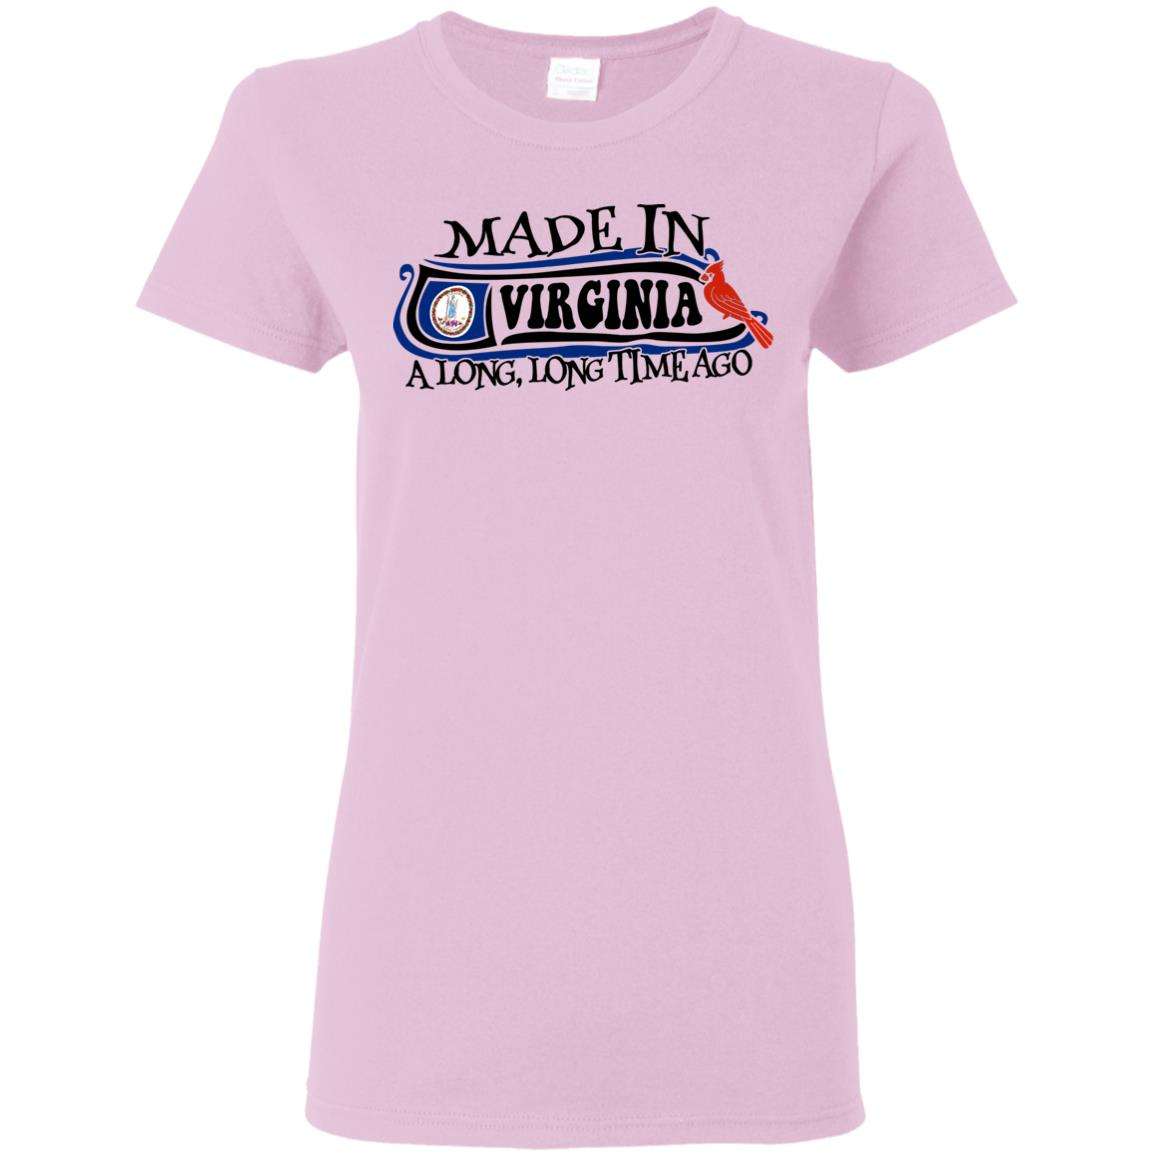 Made In Virginia A Long Long Time Ago T-Shirt